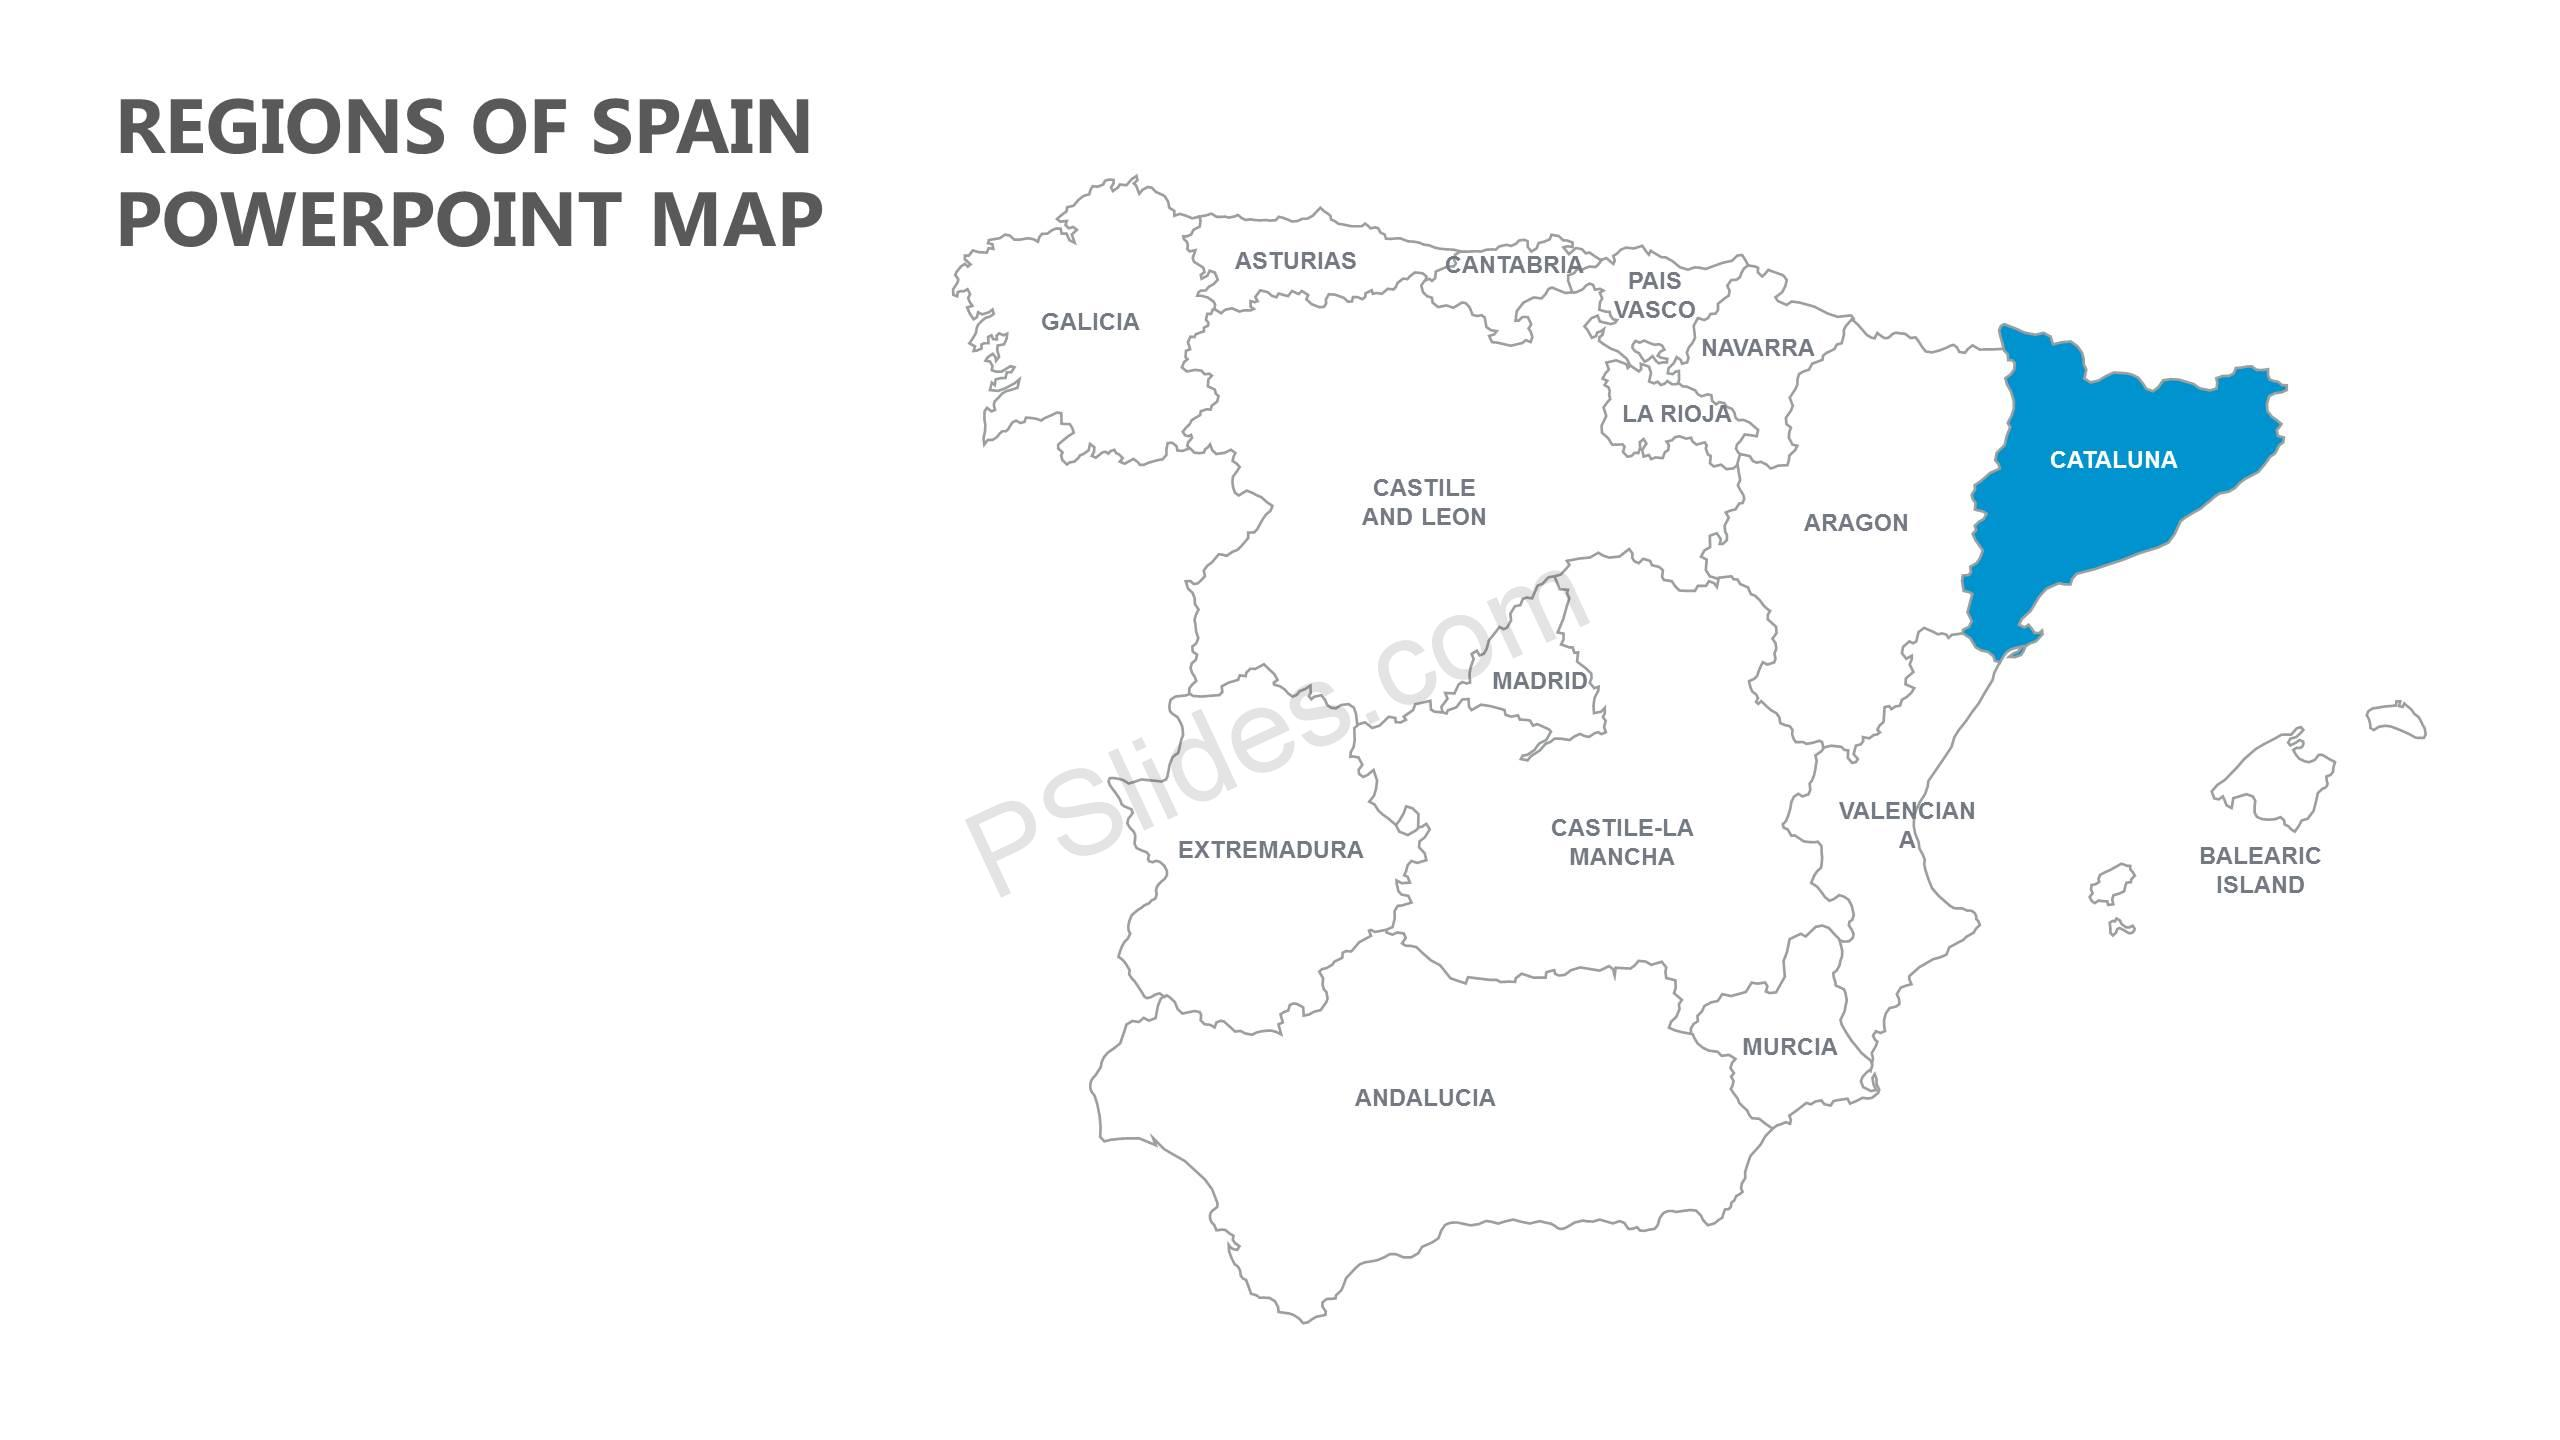 Regions of Spain PowerPoint Map - Pslides